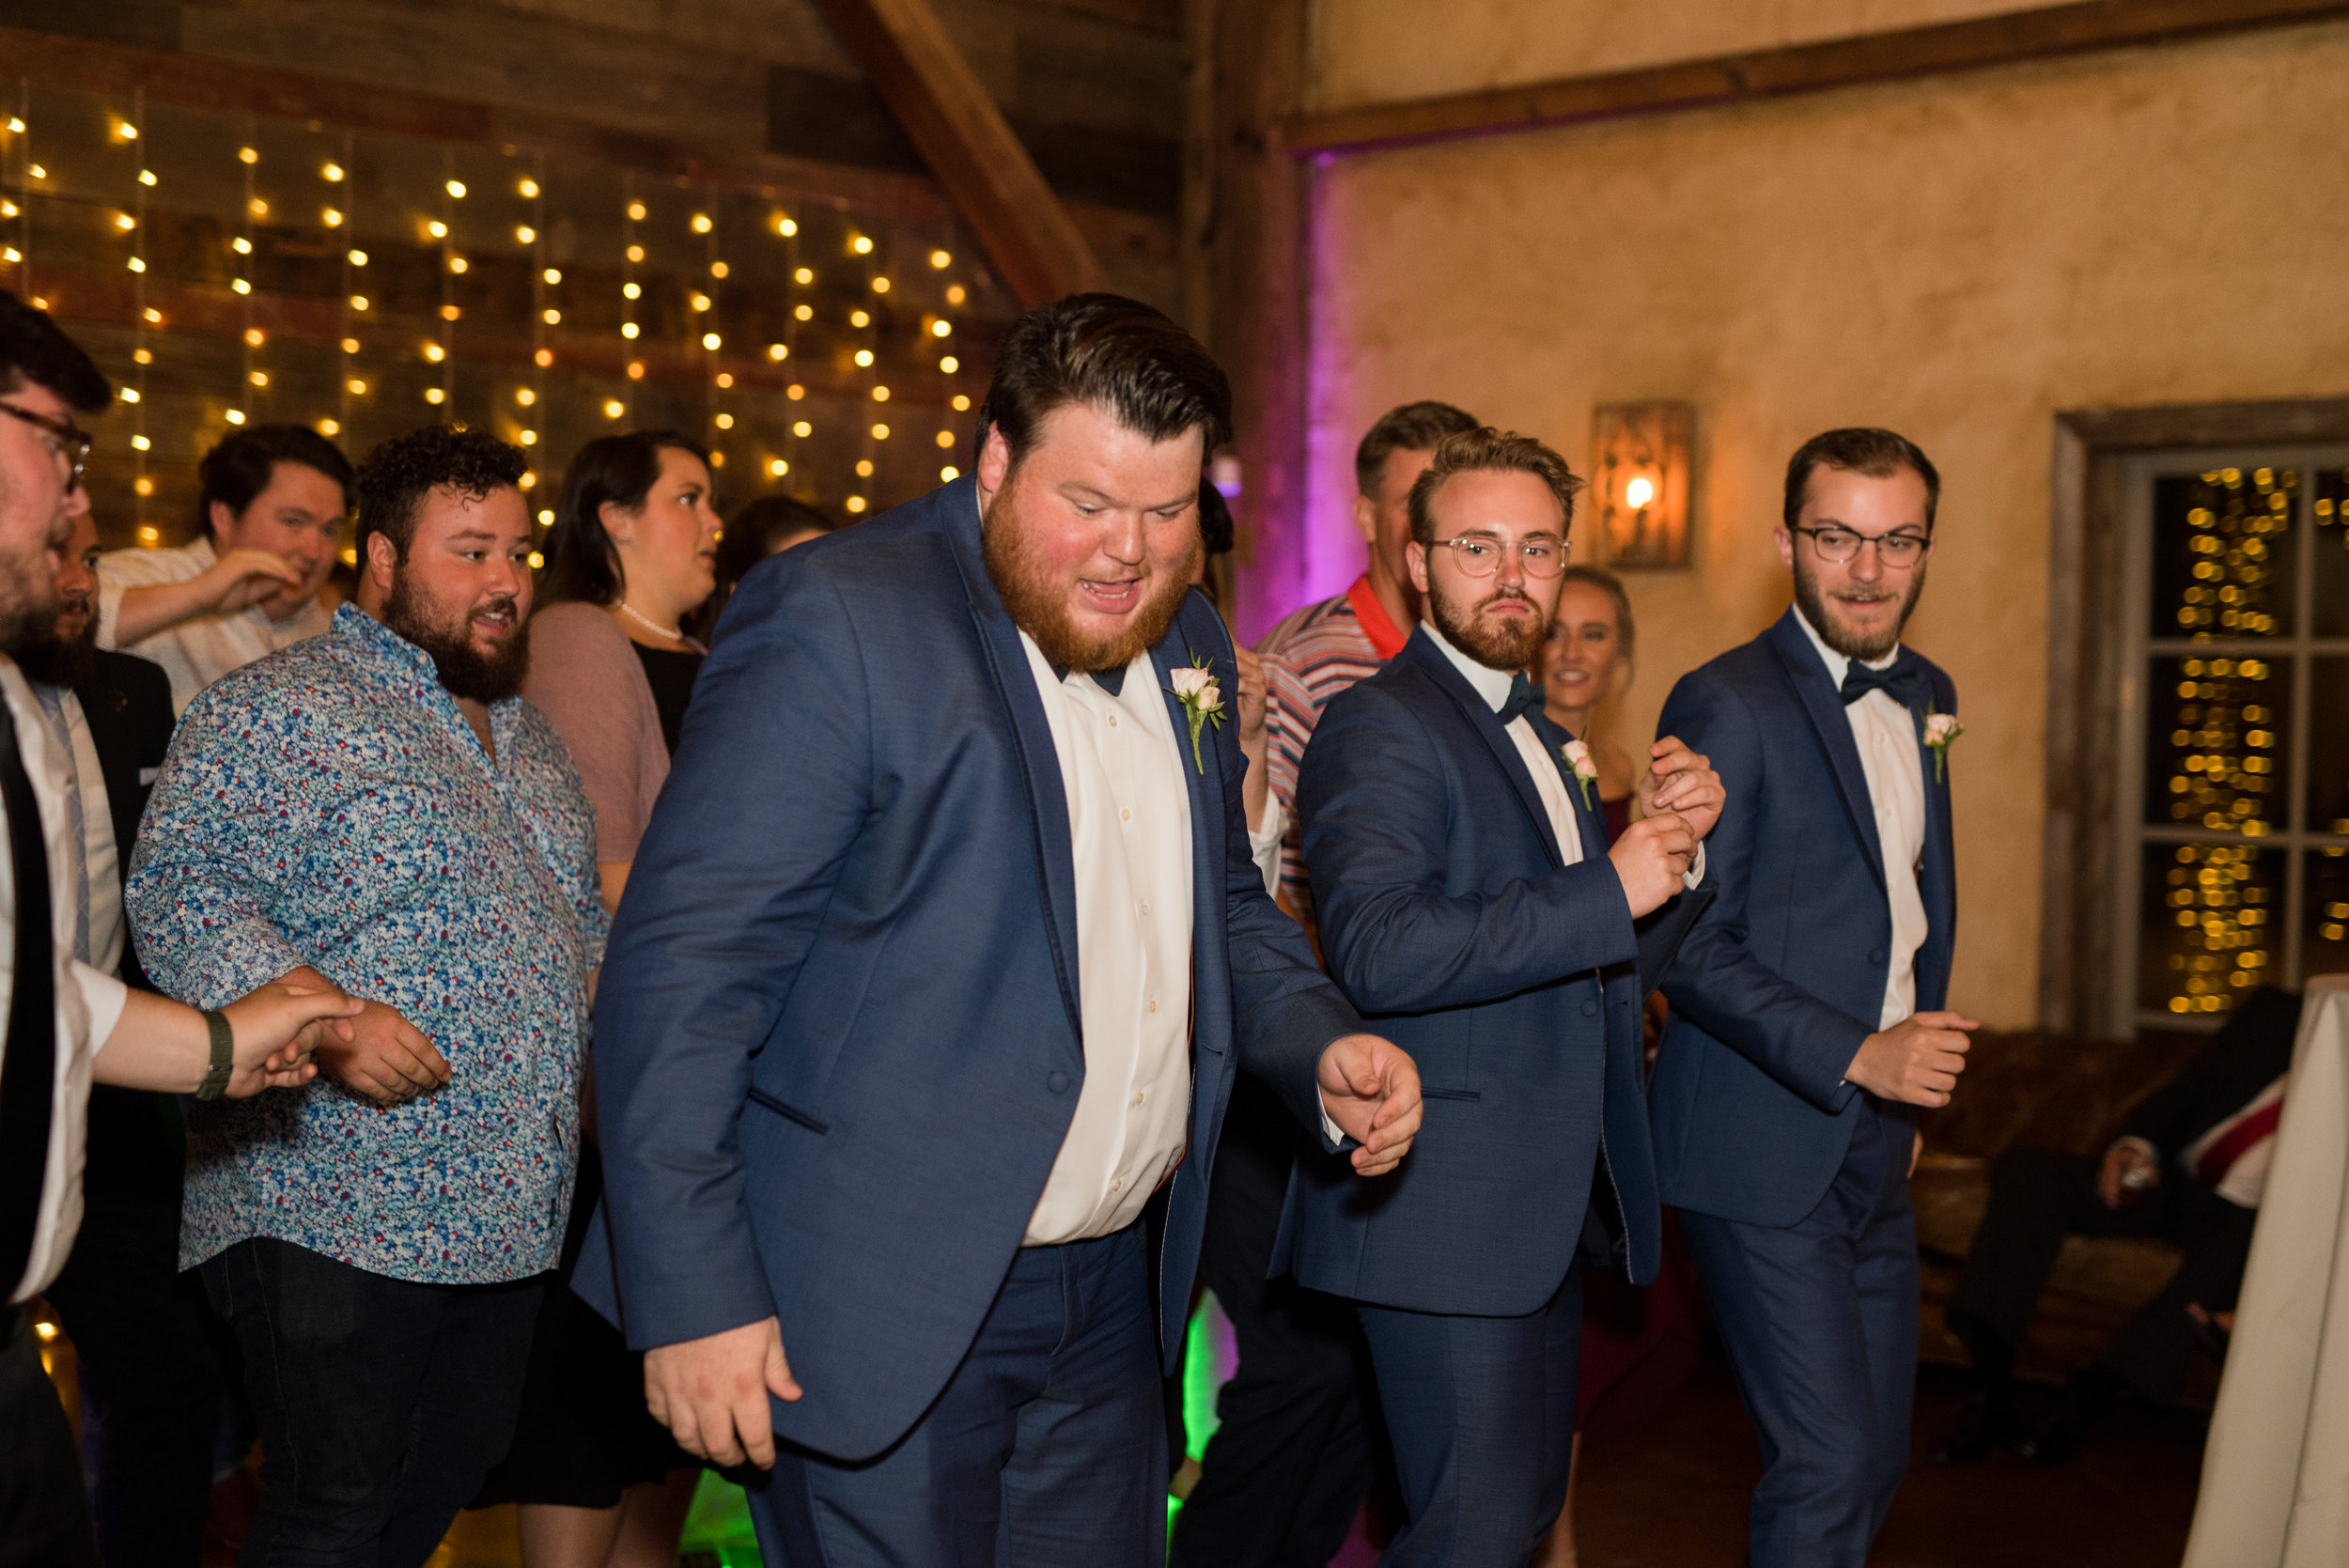 The Barn at Bridlewood wedding in Hattiesburg, Mississippi (MS) in June | Bride and Groom Wedding Reception